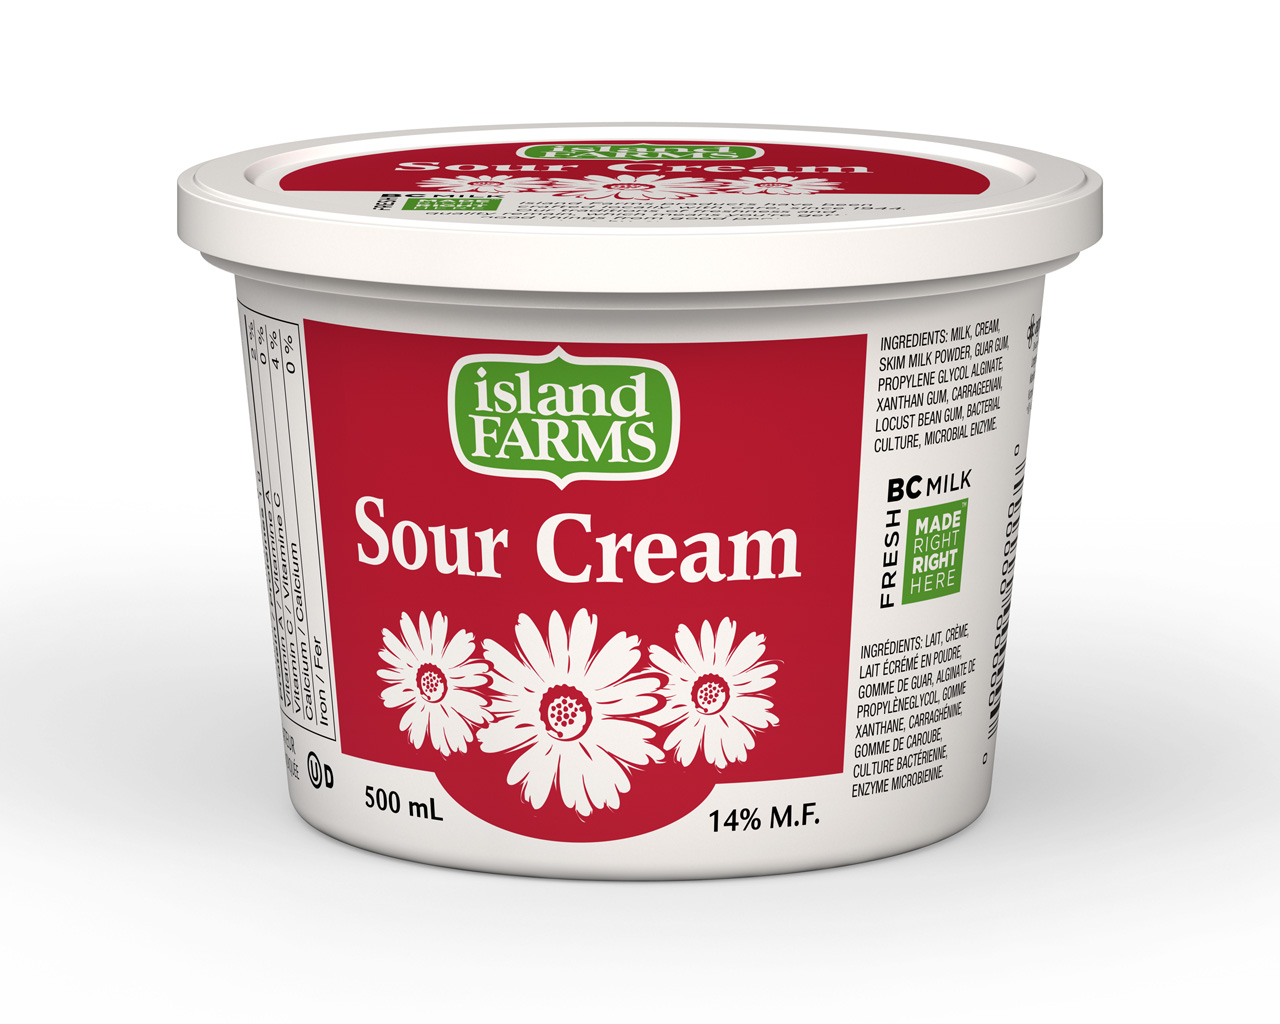 Product rendering: Sour cream container